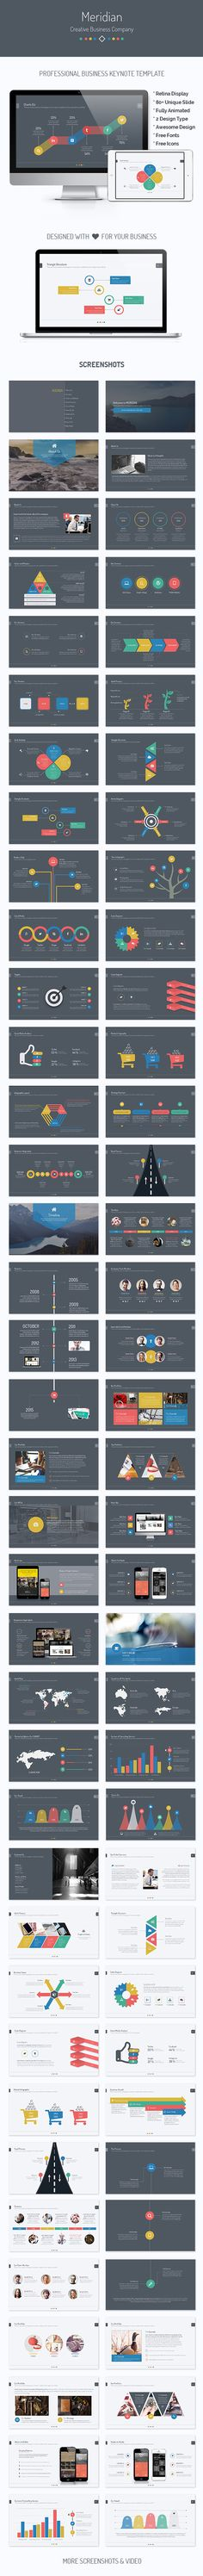 Nero Keynote - Network and Business Presentation Business - business presentation template